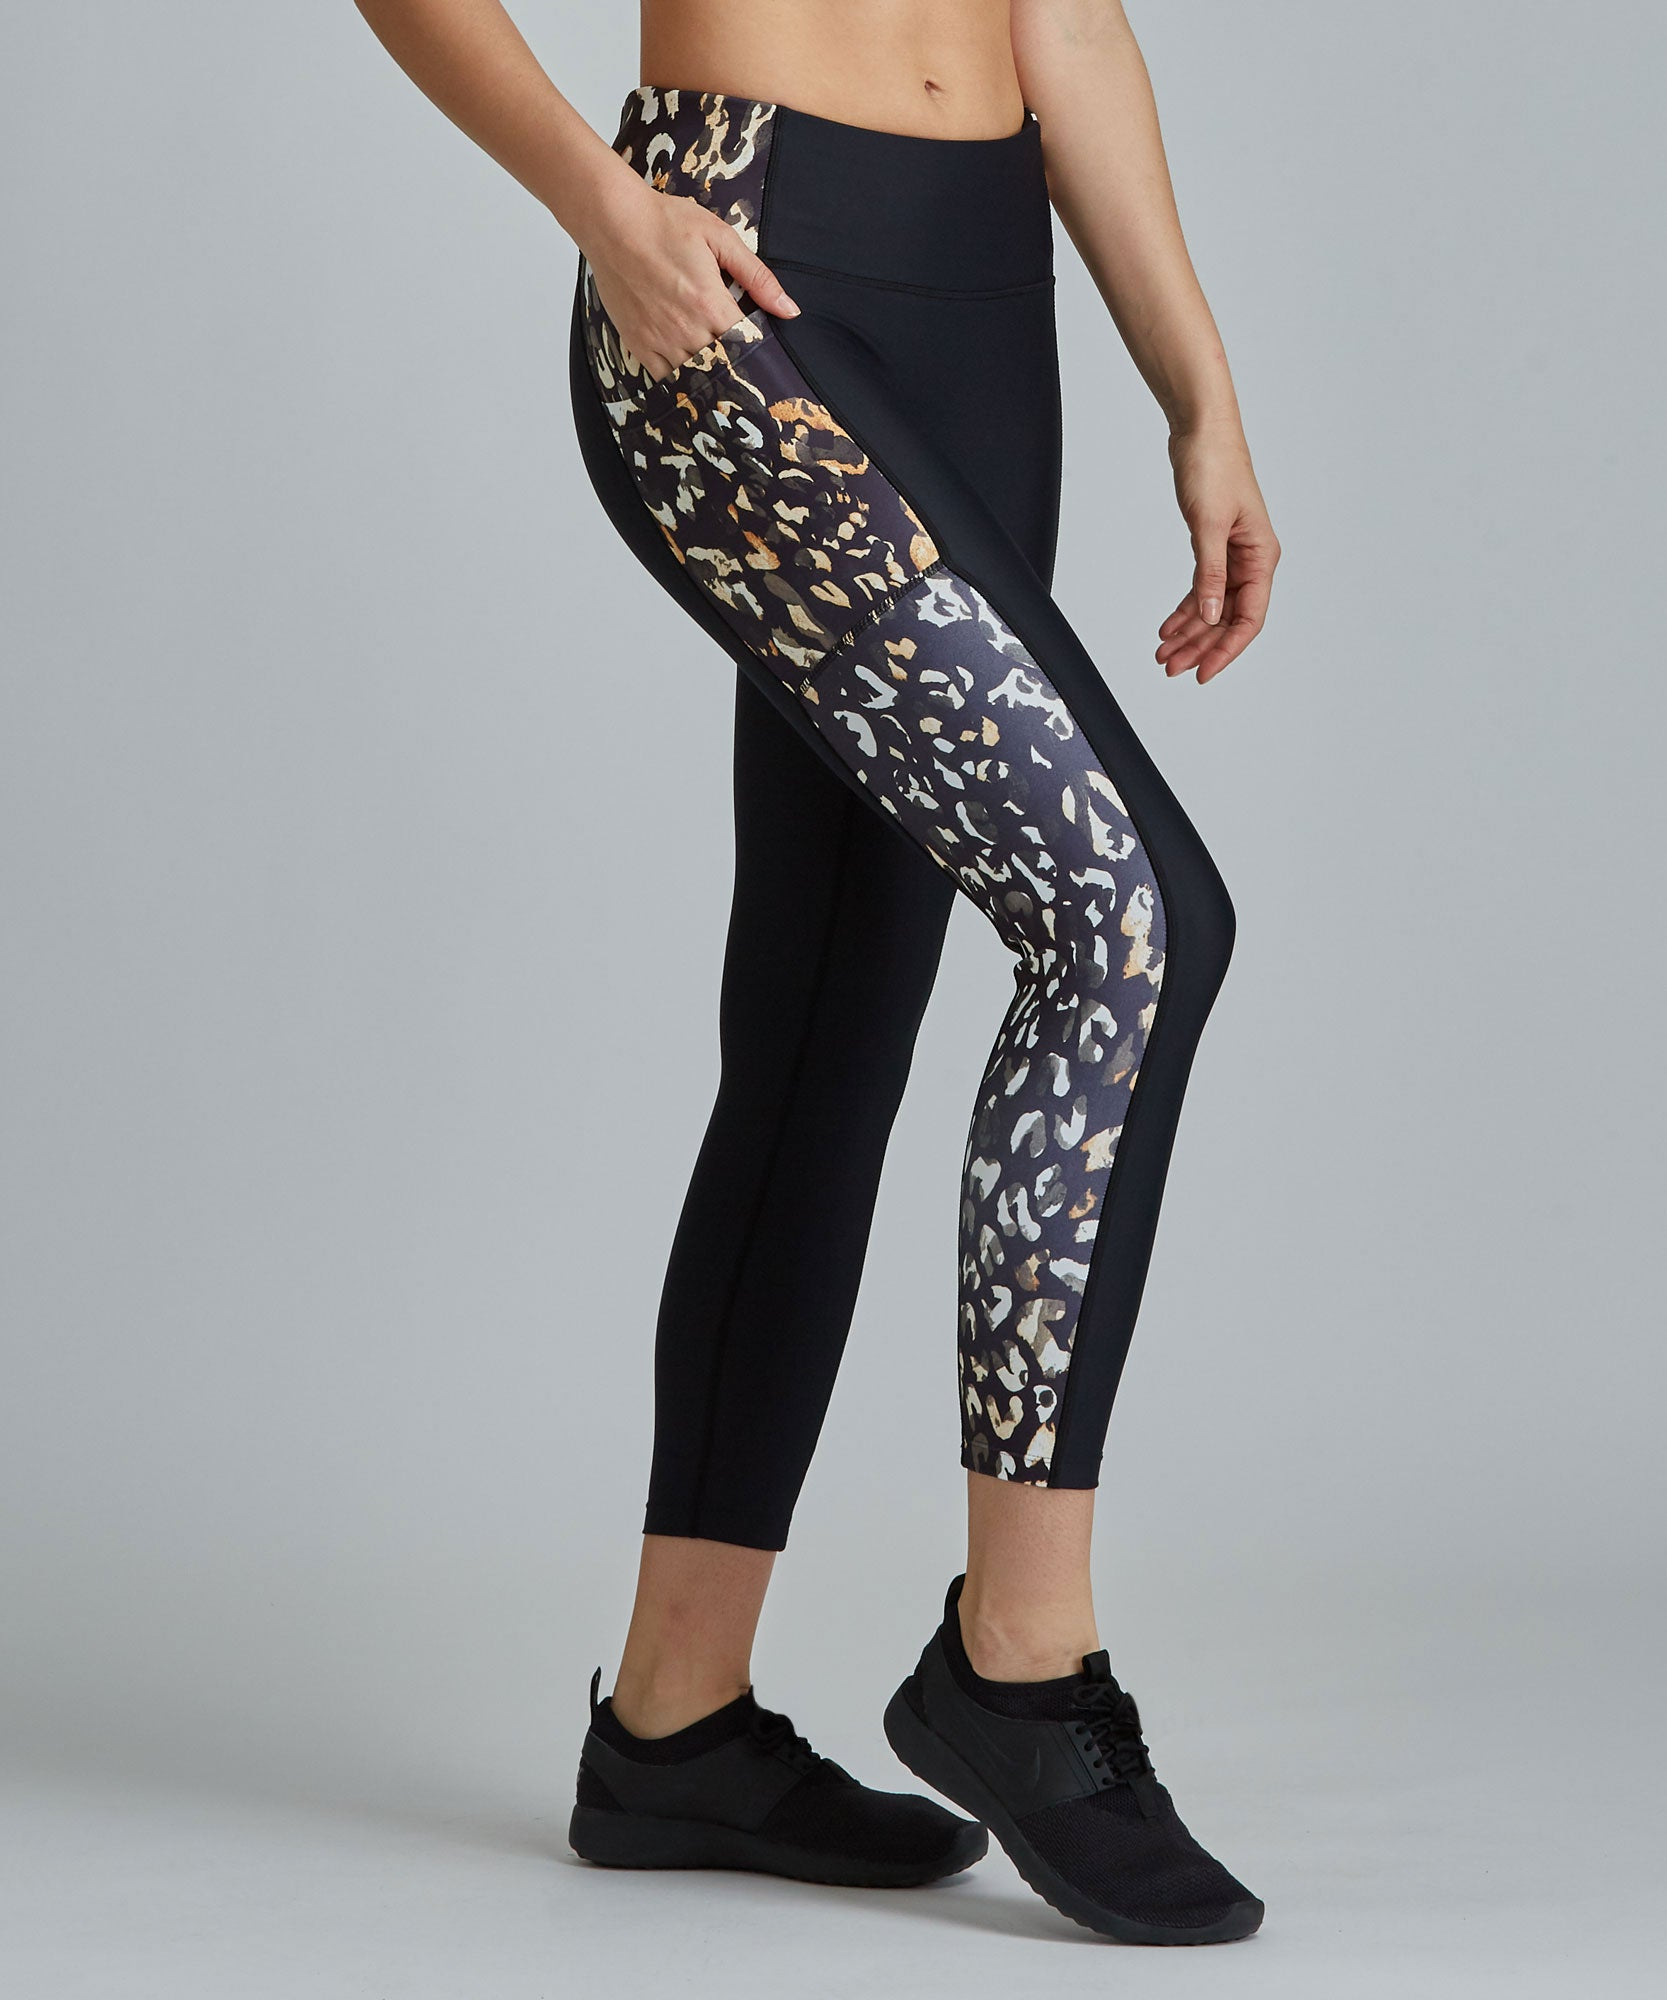 Mobility 7/8 Legging - Black/ Ombre Cheetah